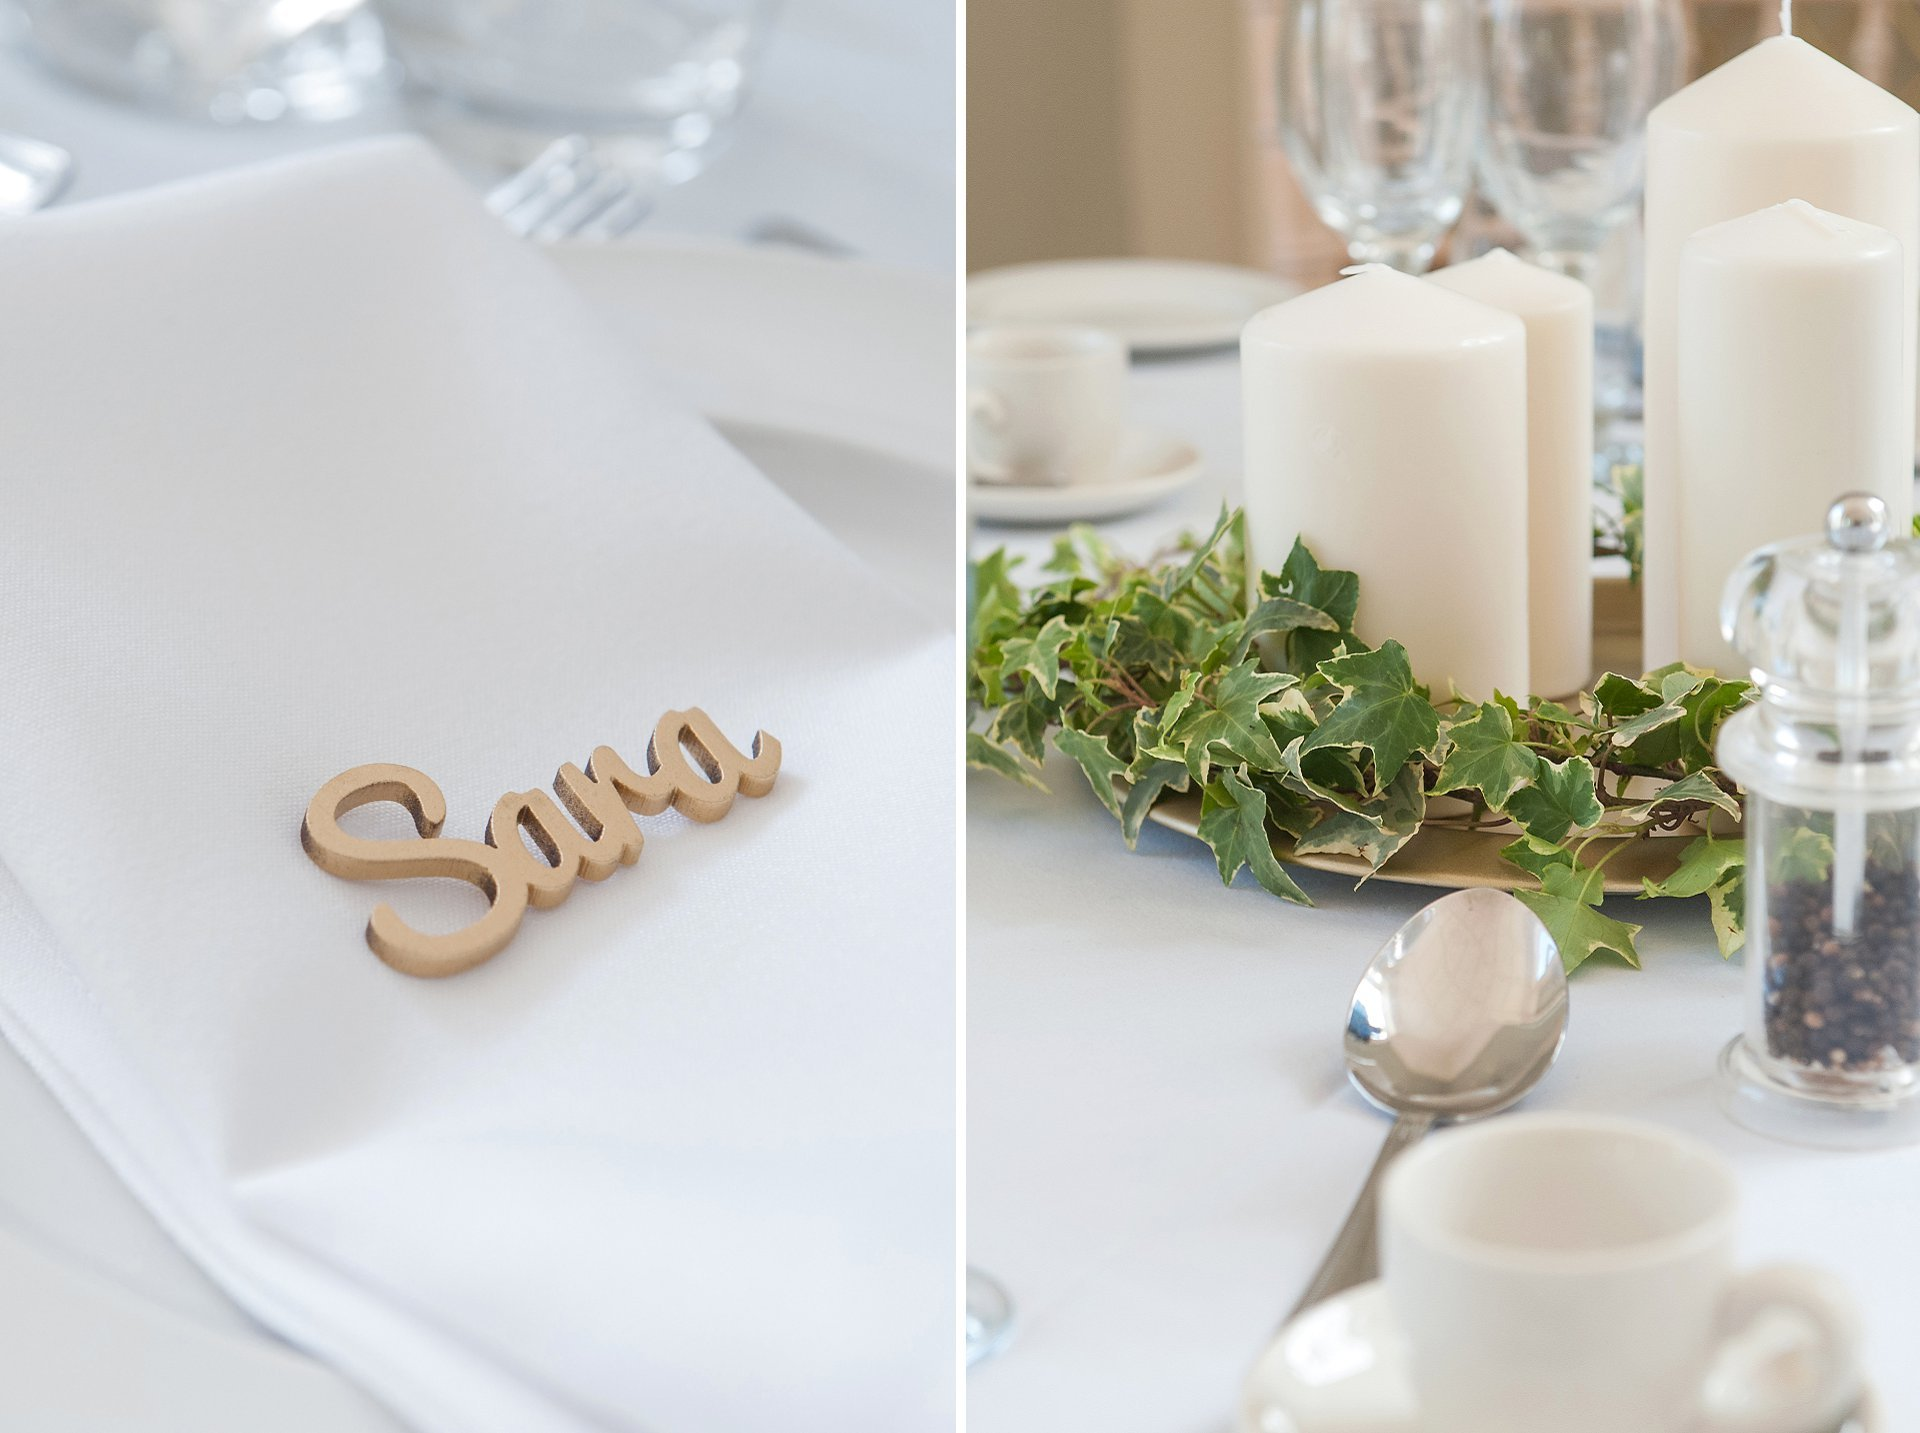 Table decorations at Starborough Manor